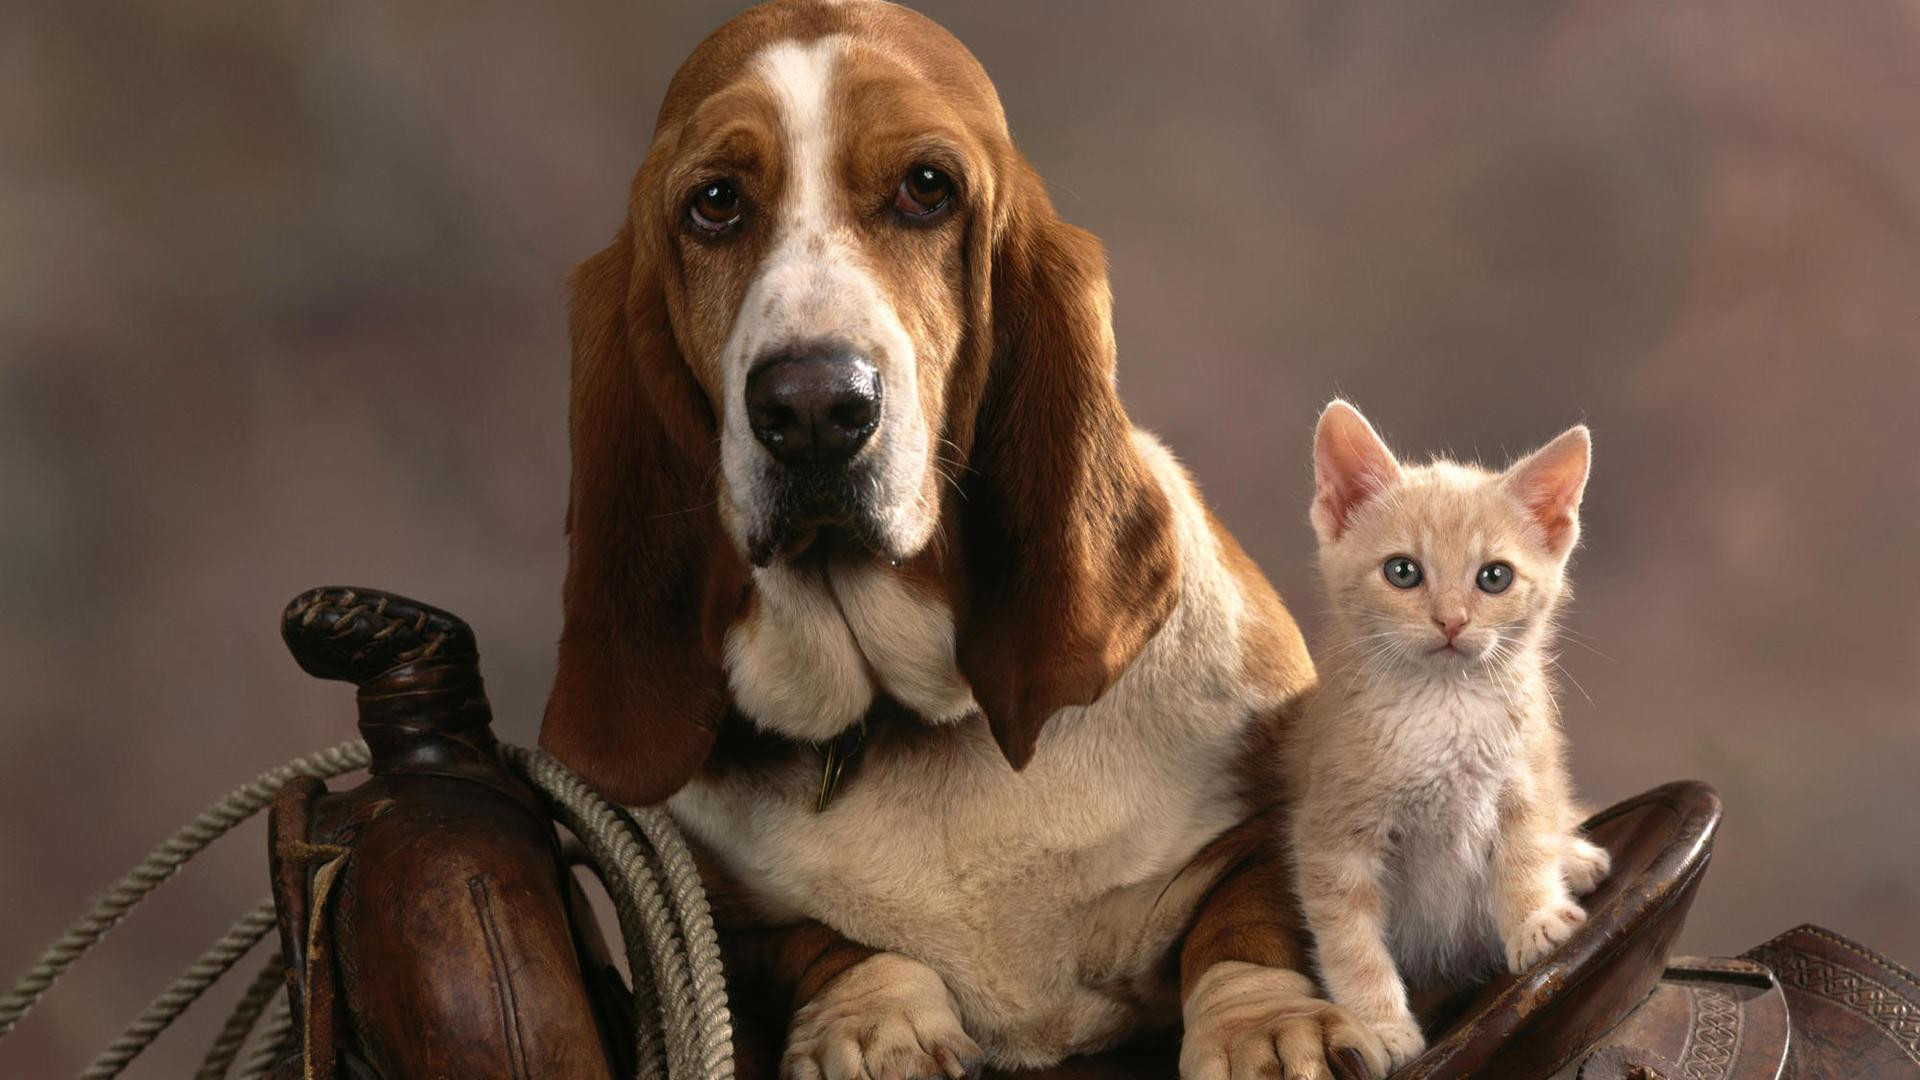 … Wallpaper Of Cute Cats And Dogs Cat And Dog Wallpapers – Wallpaper …